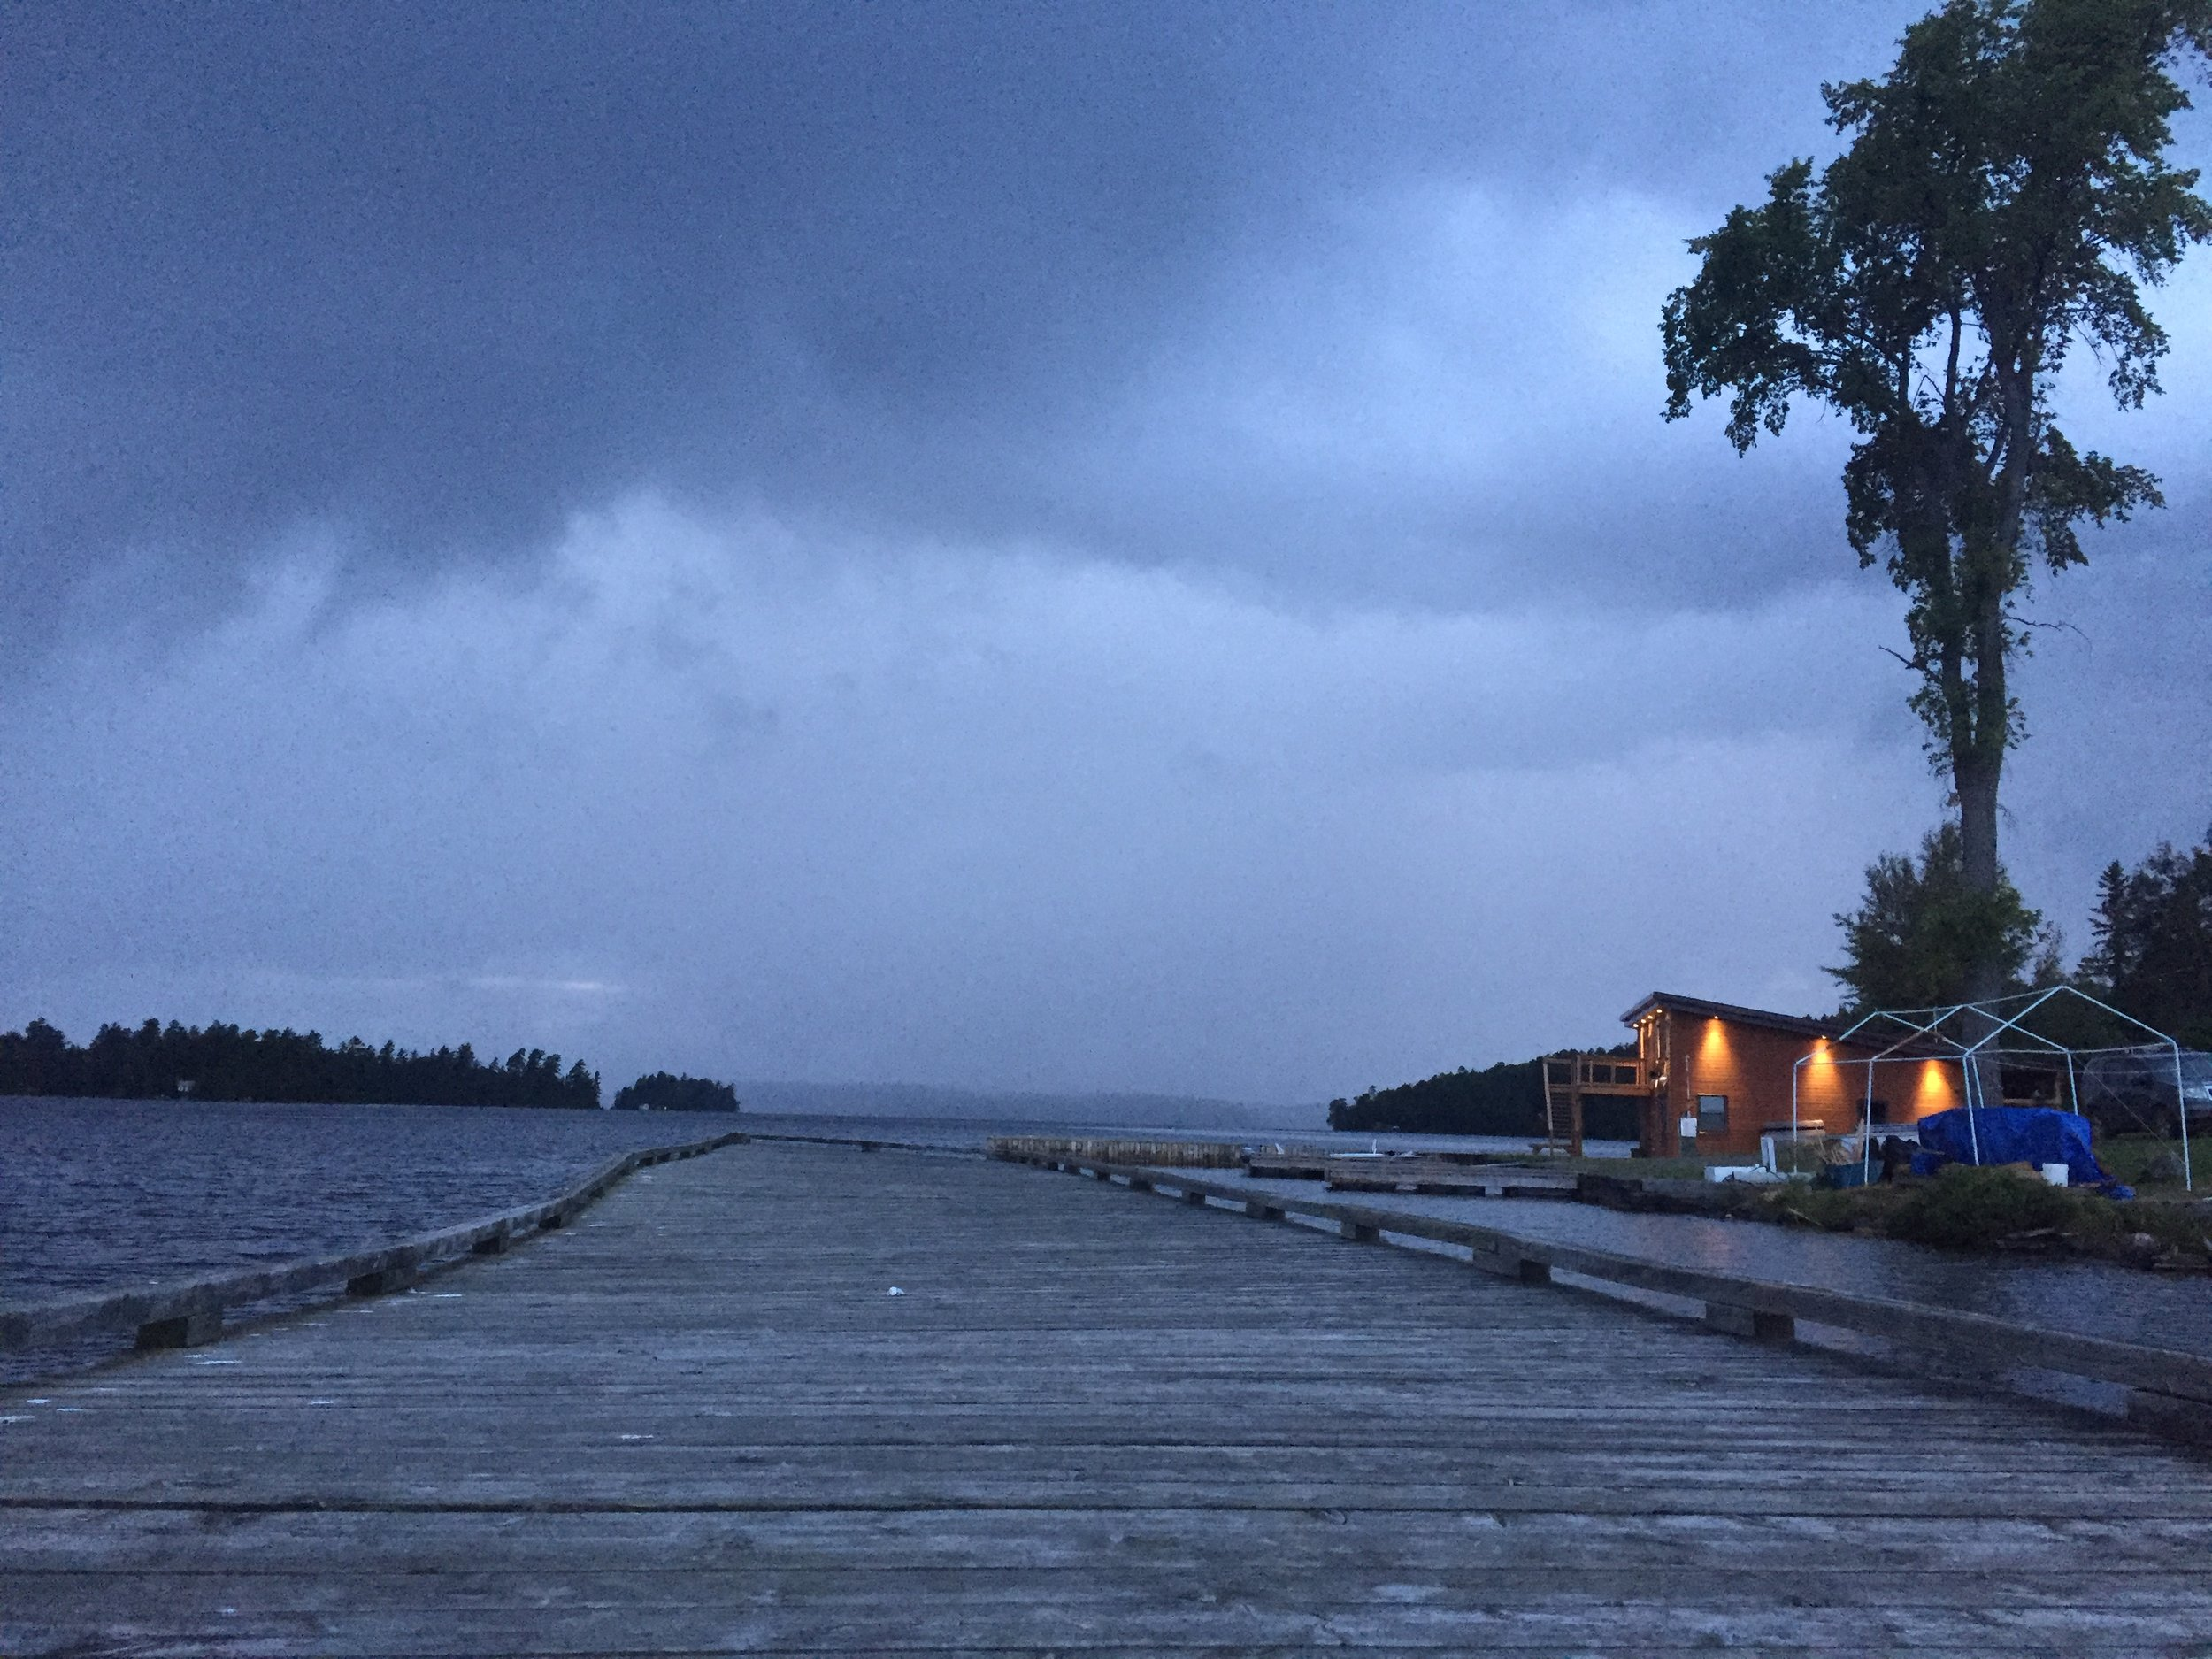 The canoe house lit up, as the storm comes in